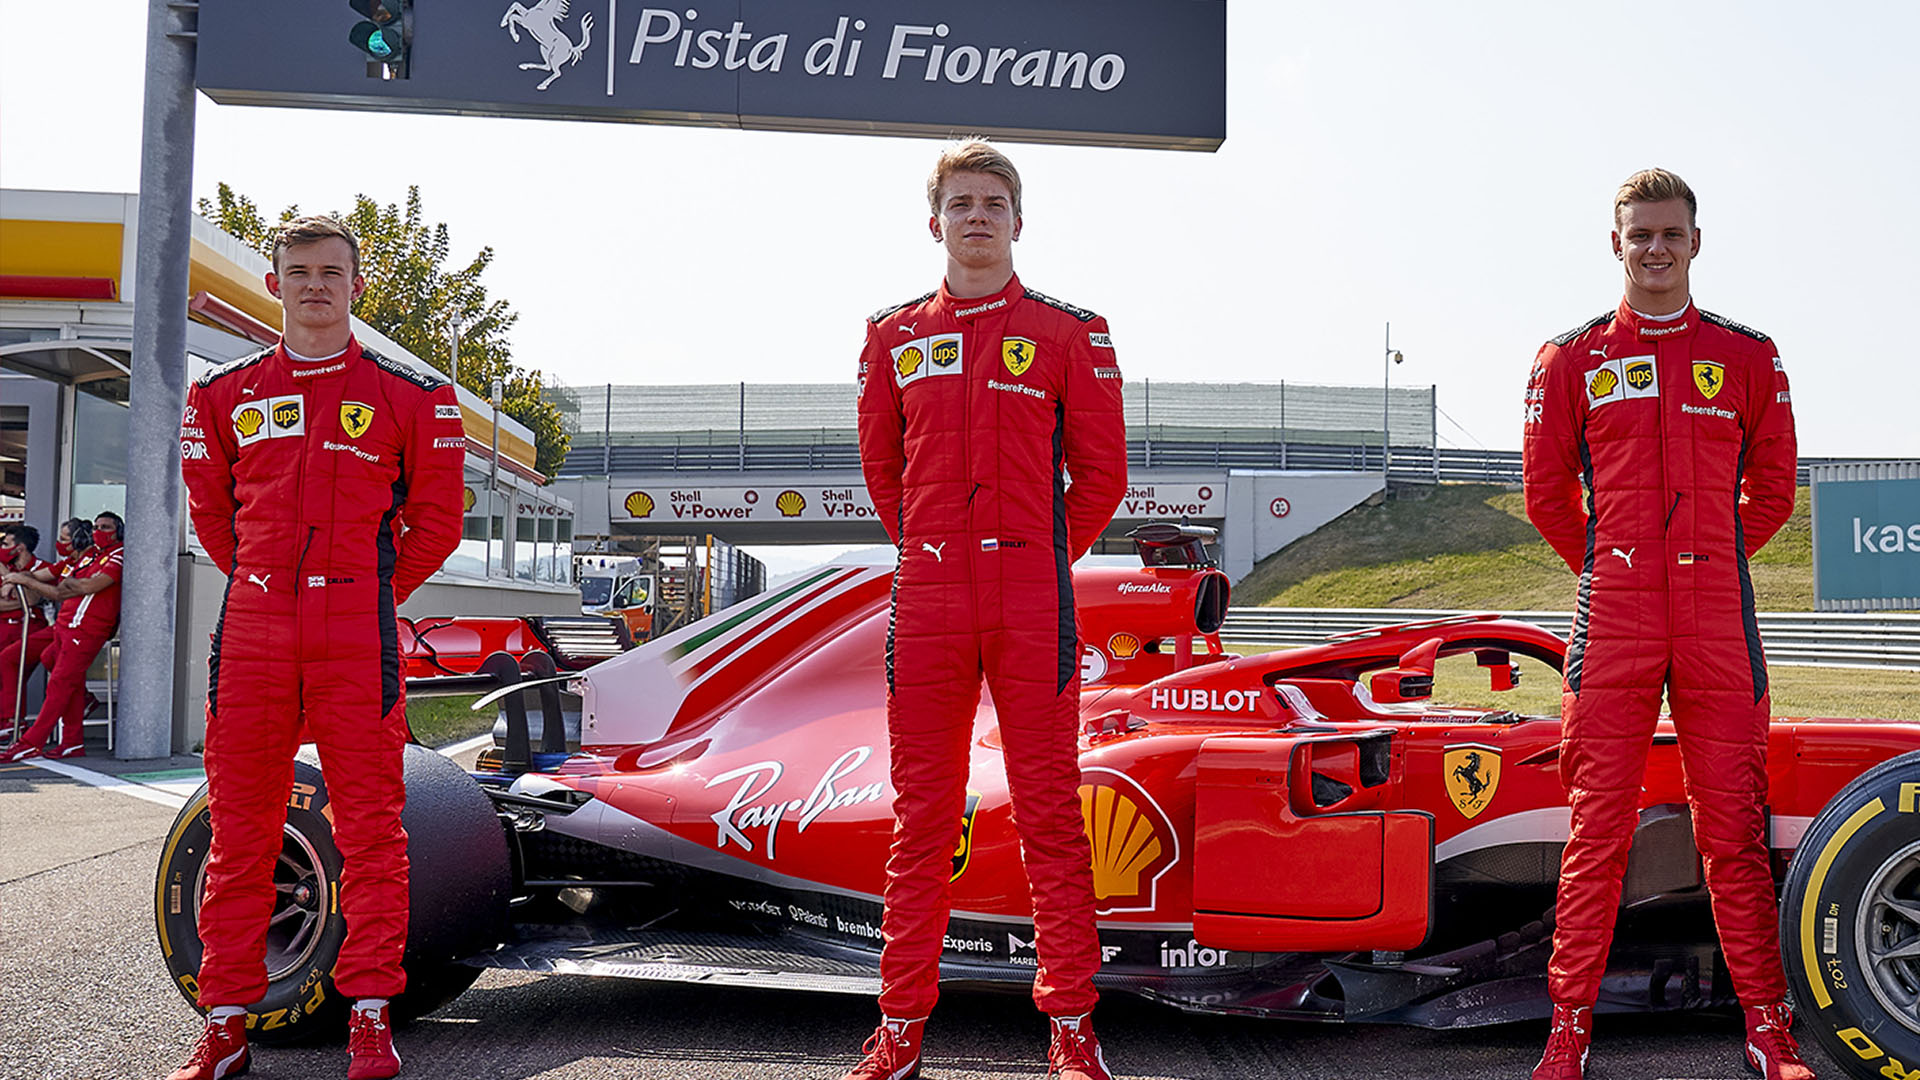 Ferrari To Decide Which Junior Driver Will Get 2021 F1 Chance In Next Couple Of Weeks Says Binotto Formula 1